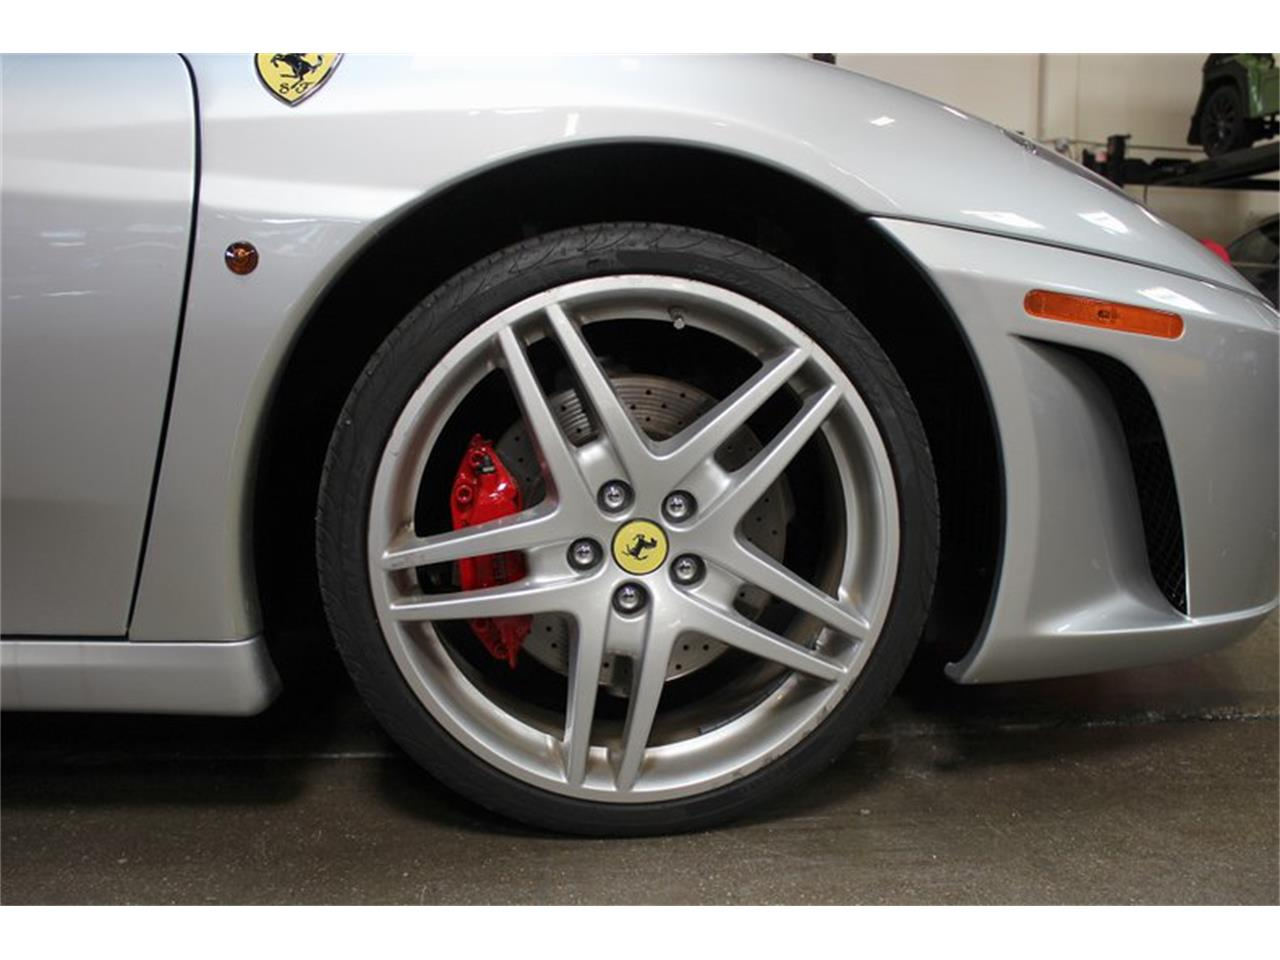 2005 Ferrari F430 for sale in San Carlos, CA – photo 11